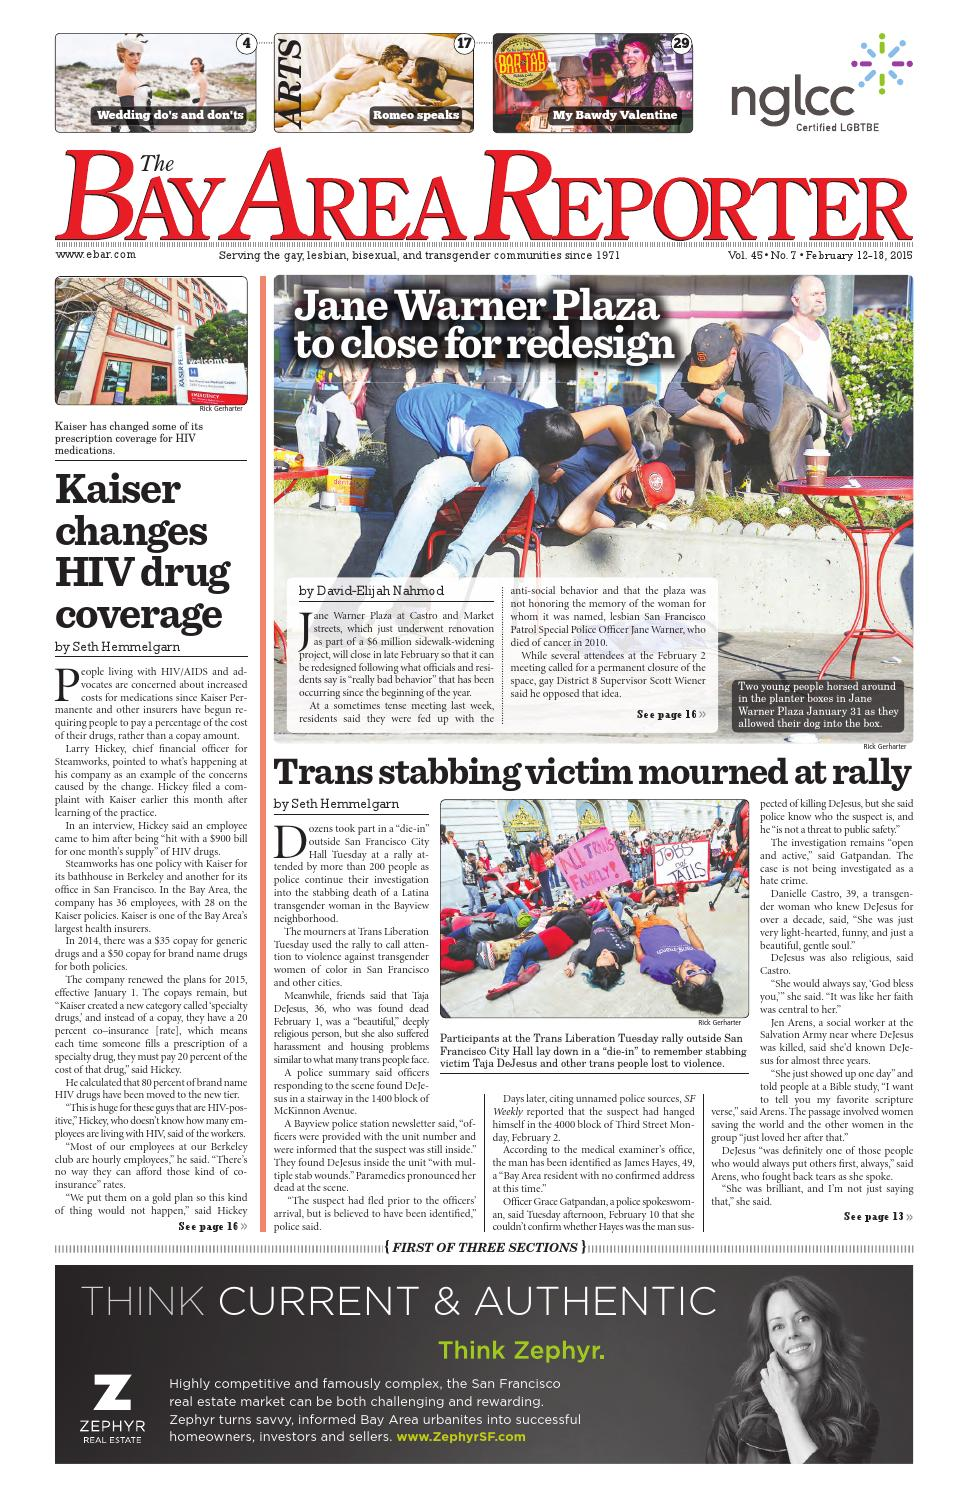 February 12, 2015 Edition of the Bay Area Reporter